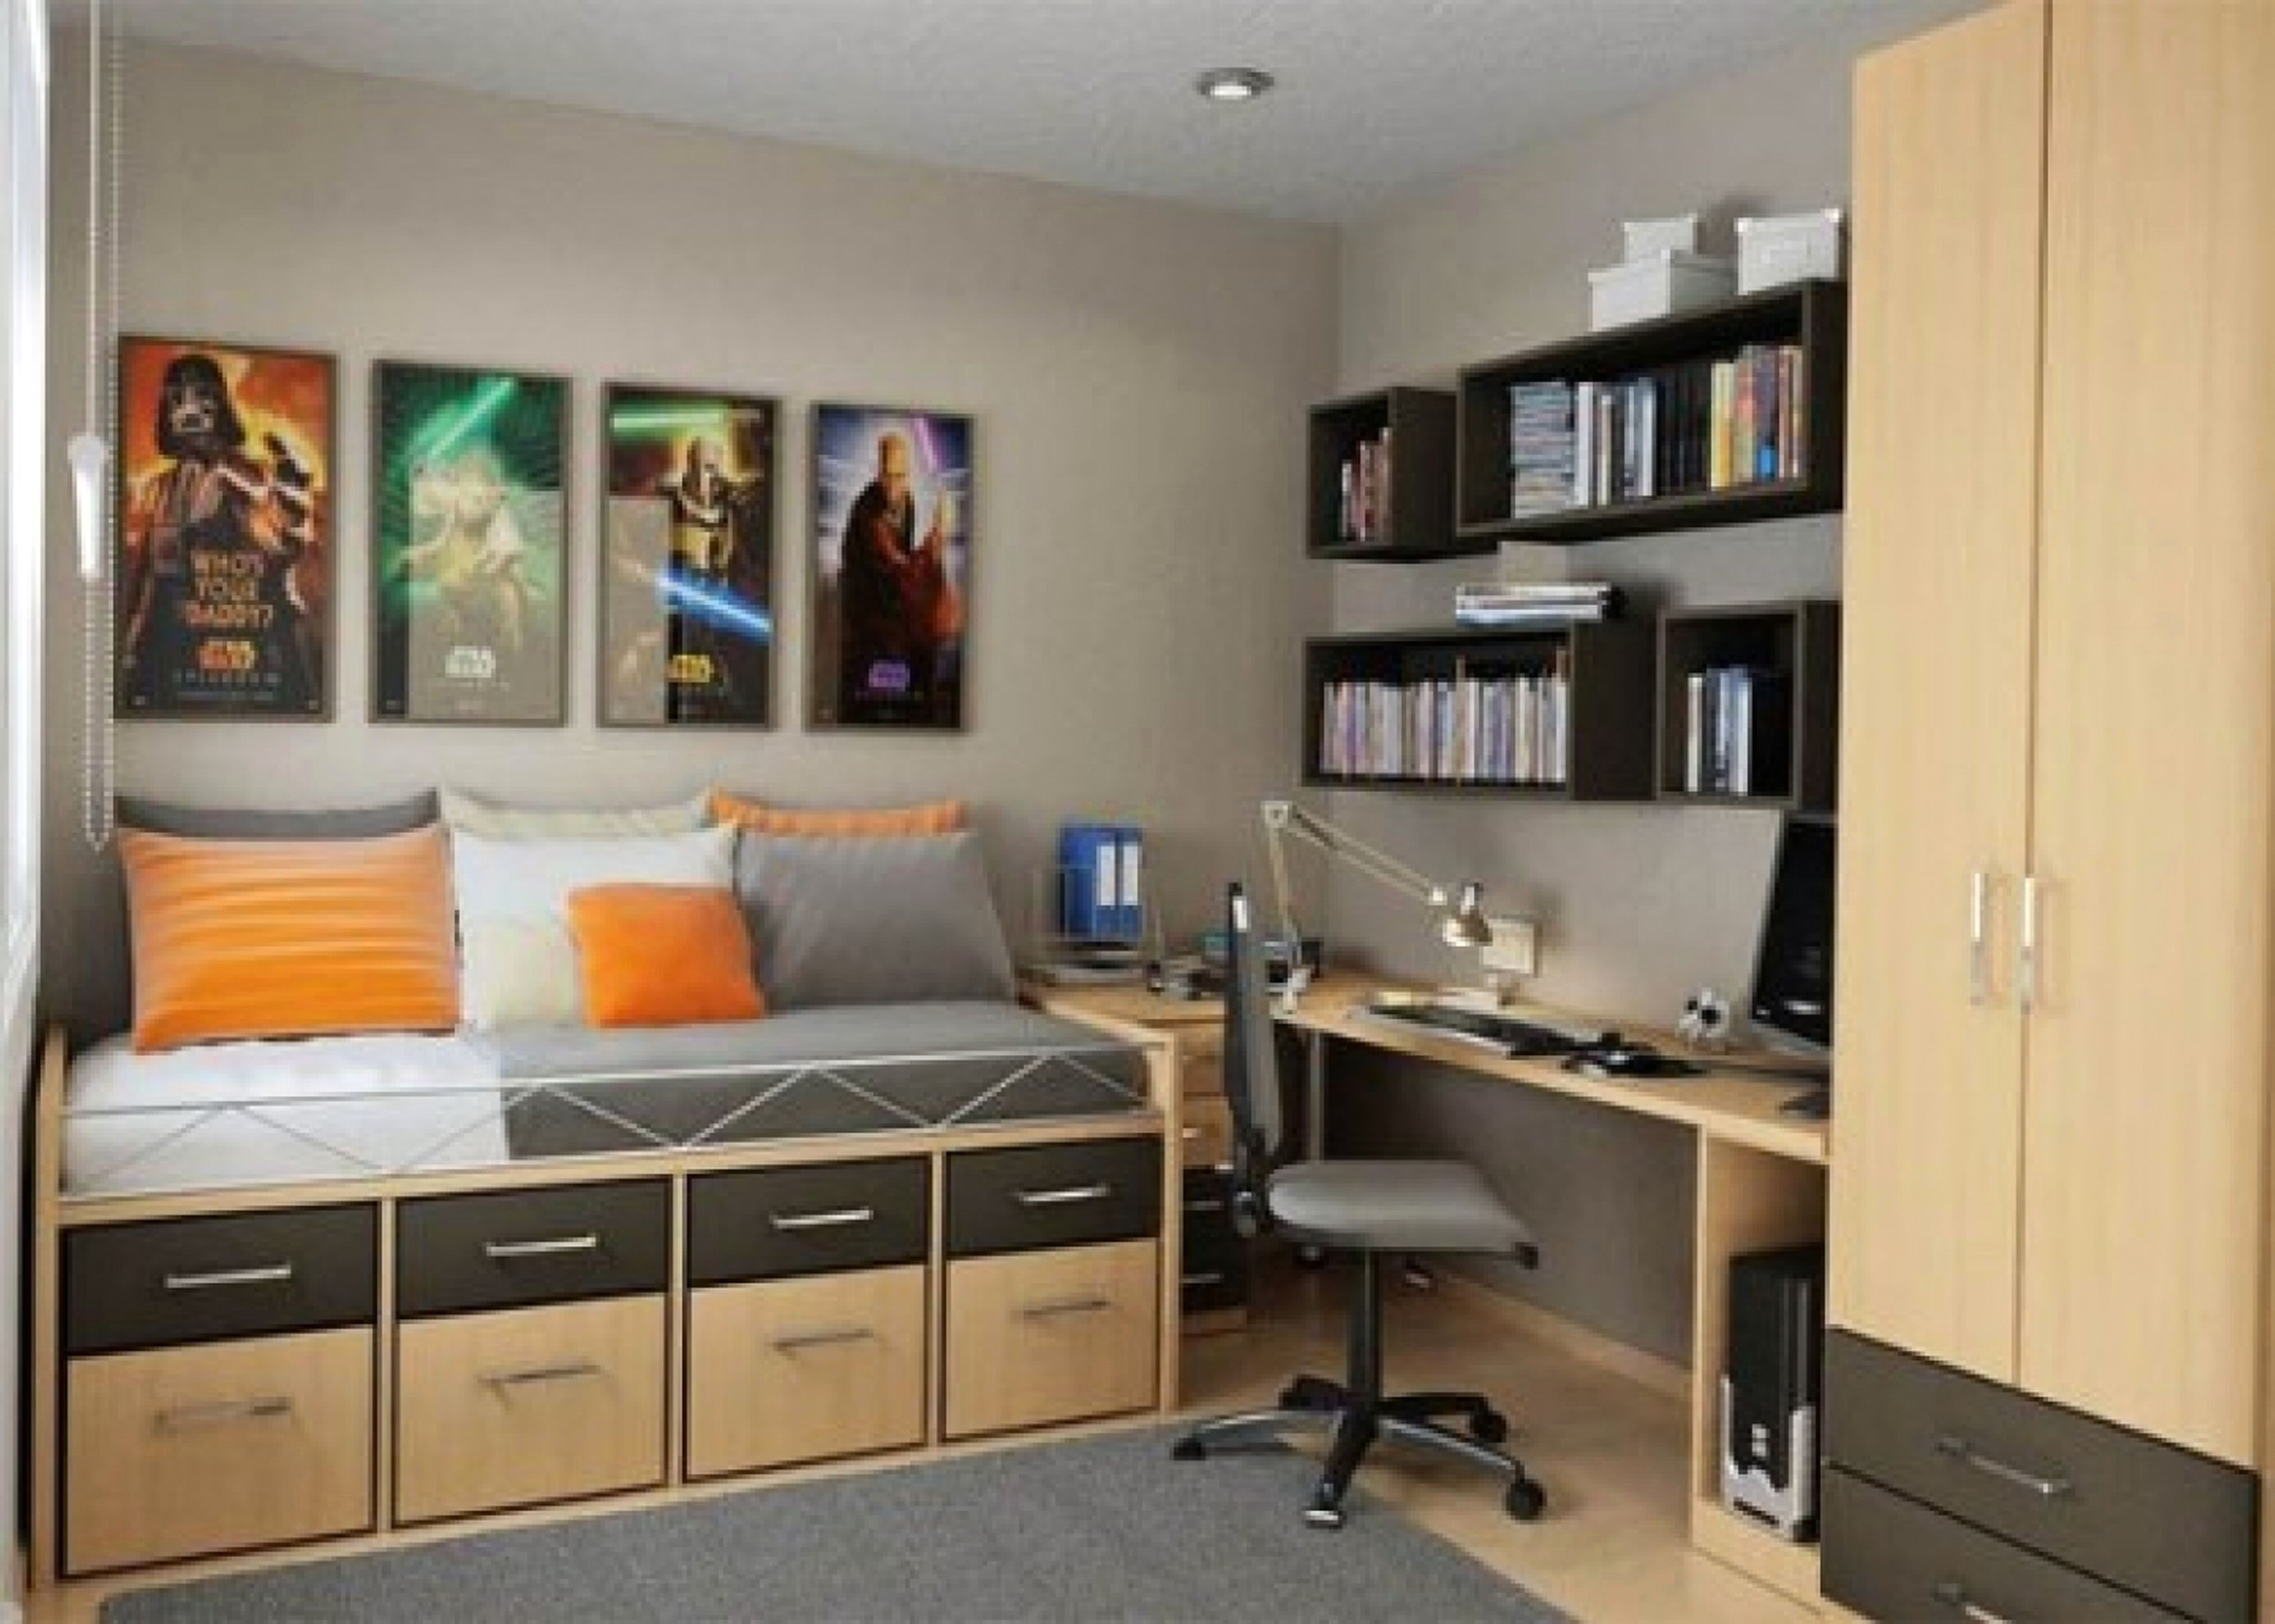 11 Genius Ikea Bedroom Hacks That Will Blow Your Mind Diy Bedroom Ideas For Small Rooms Small Room Ikea Bedroom Storage For Small Rooms Ikea Bedroom Storage